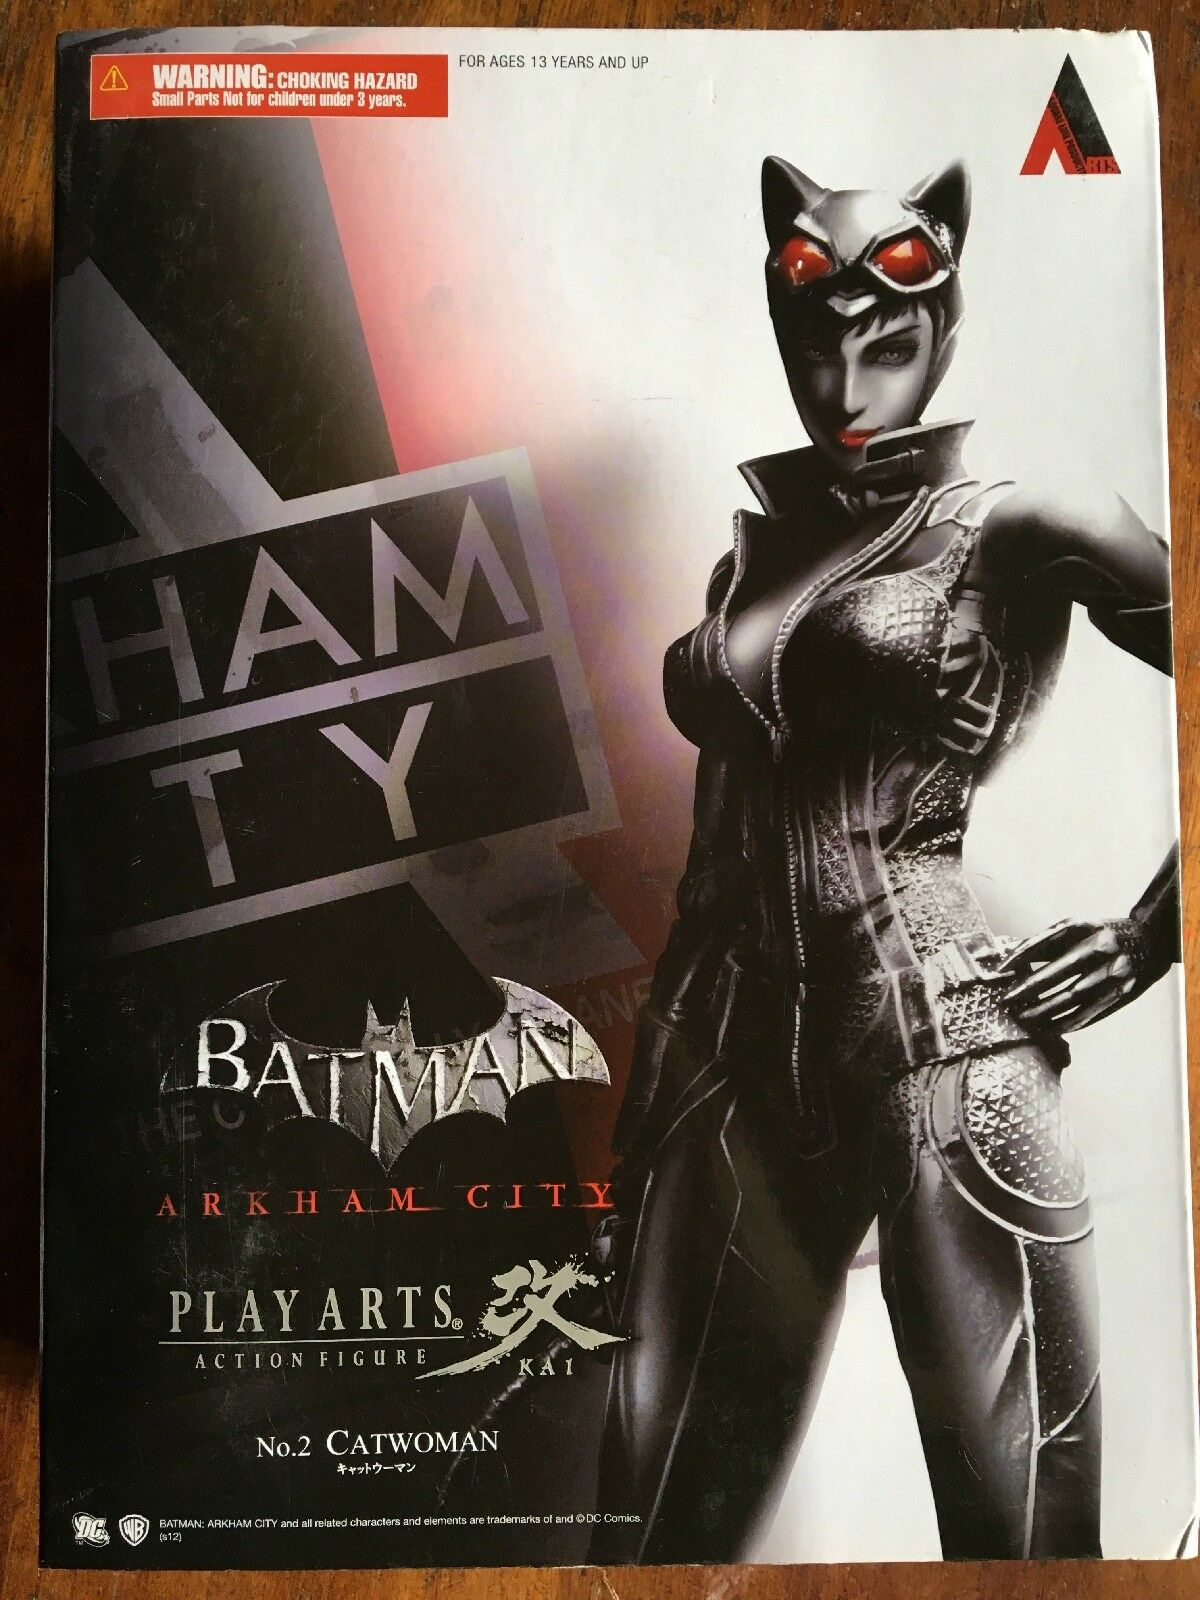 BATMAN CATWOMAN ARKHAM CITY PLAY ARTS ACTION 22.9cm FIGURE KAI BRAND NEW BOXED